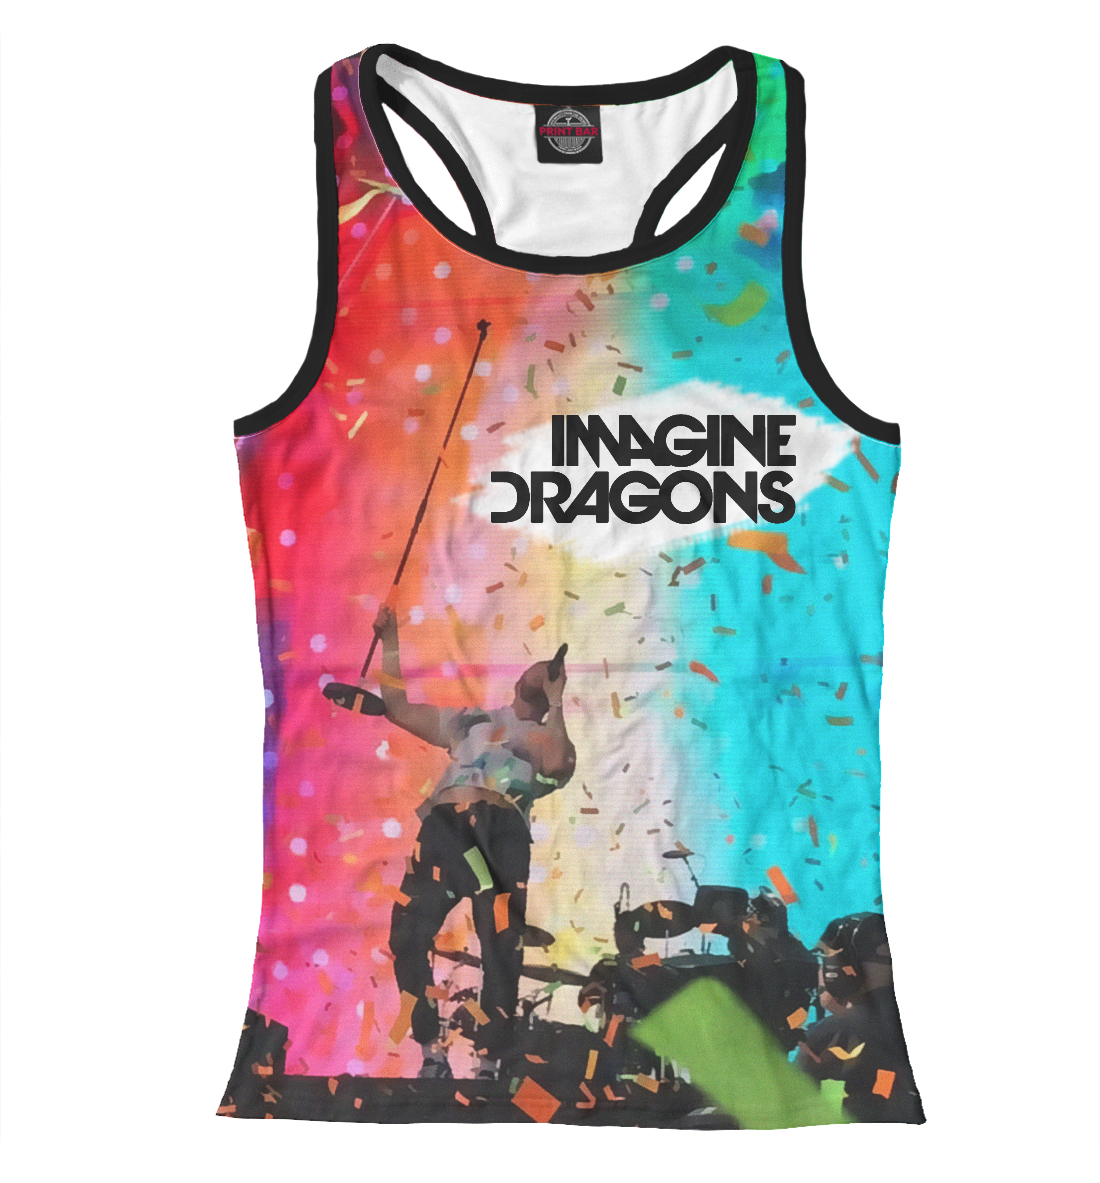 Купить Imagine Dragons, Printbar, Майки борцовки, IMA-975068-mayb-1